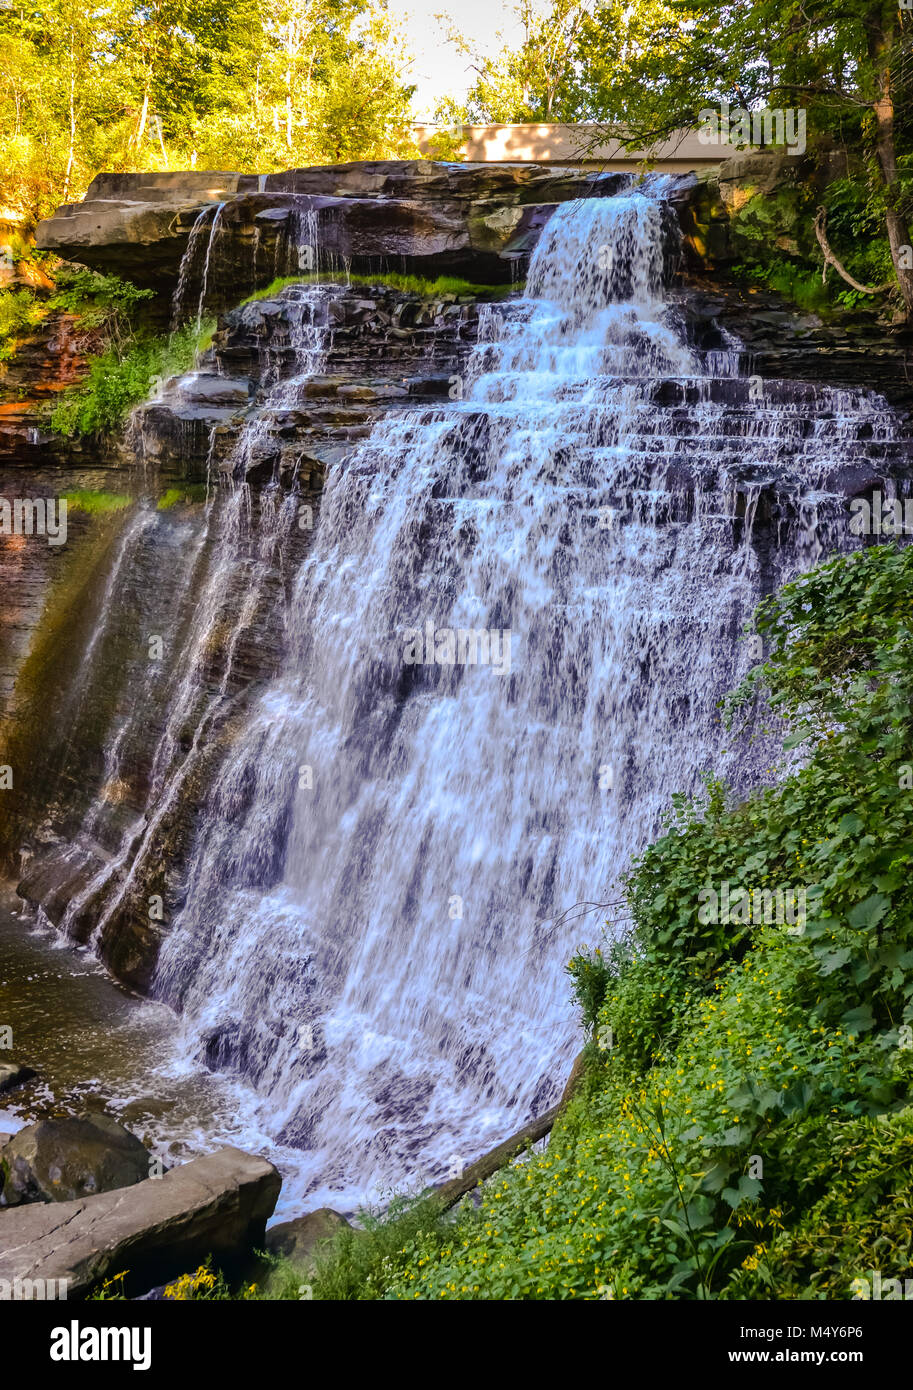 'Bridal veil' cascades over shale and sandstone found in Cuyahoga Valley National Park. - Stock Image